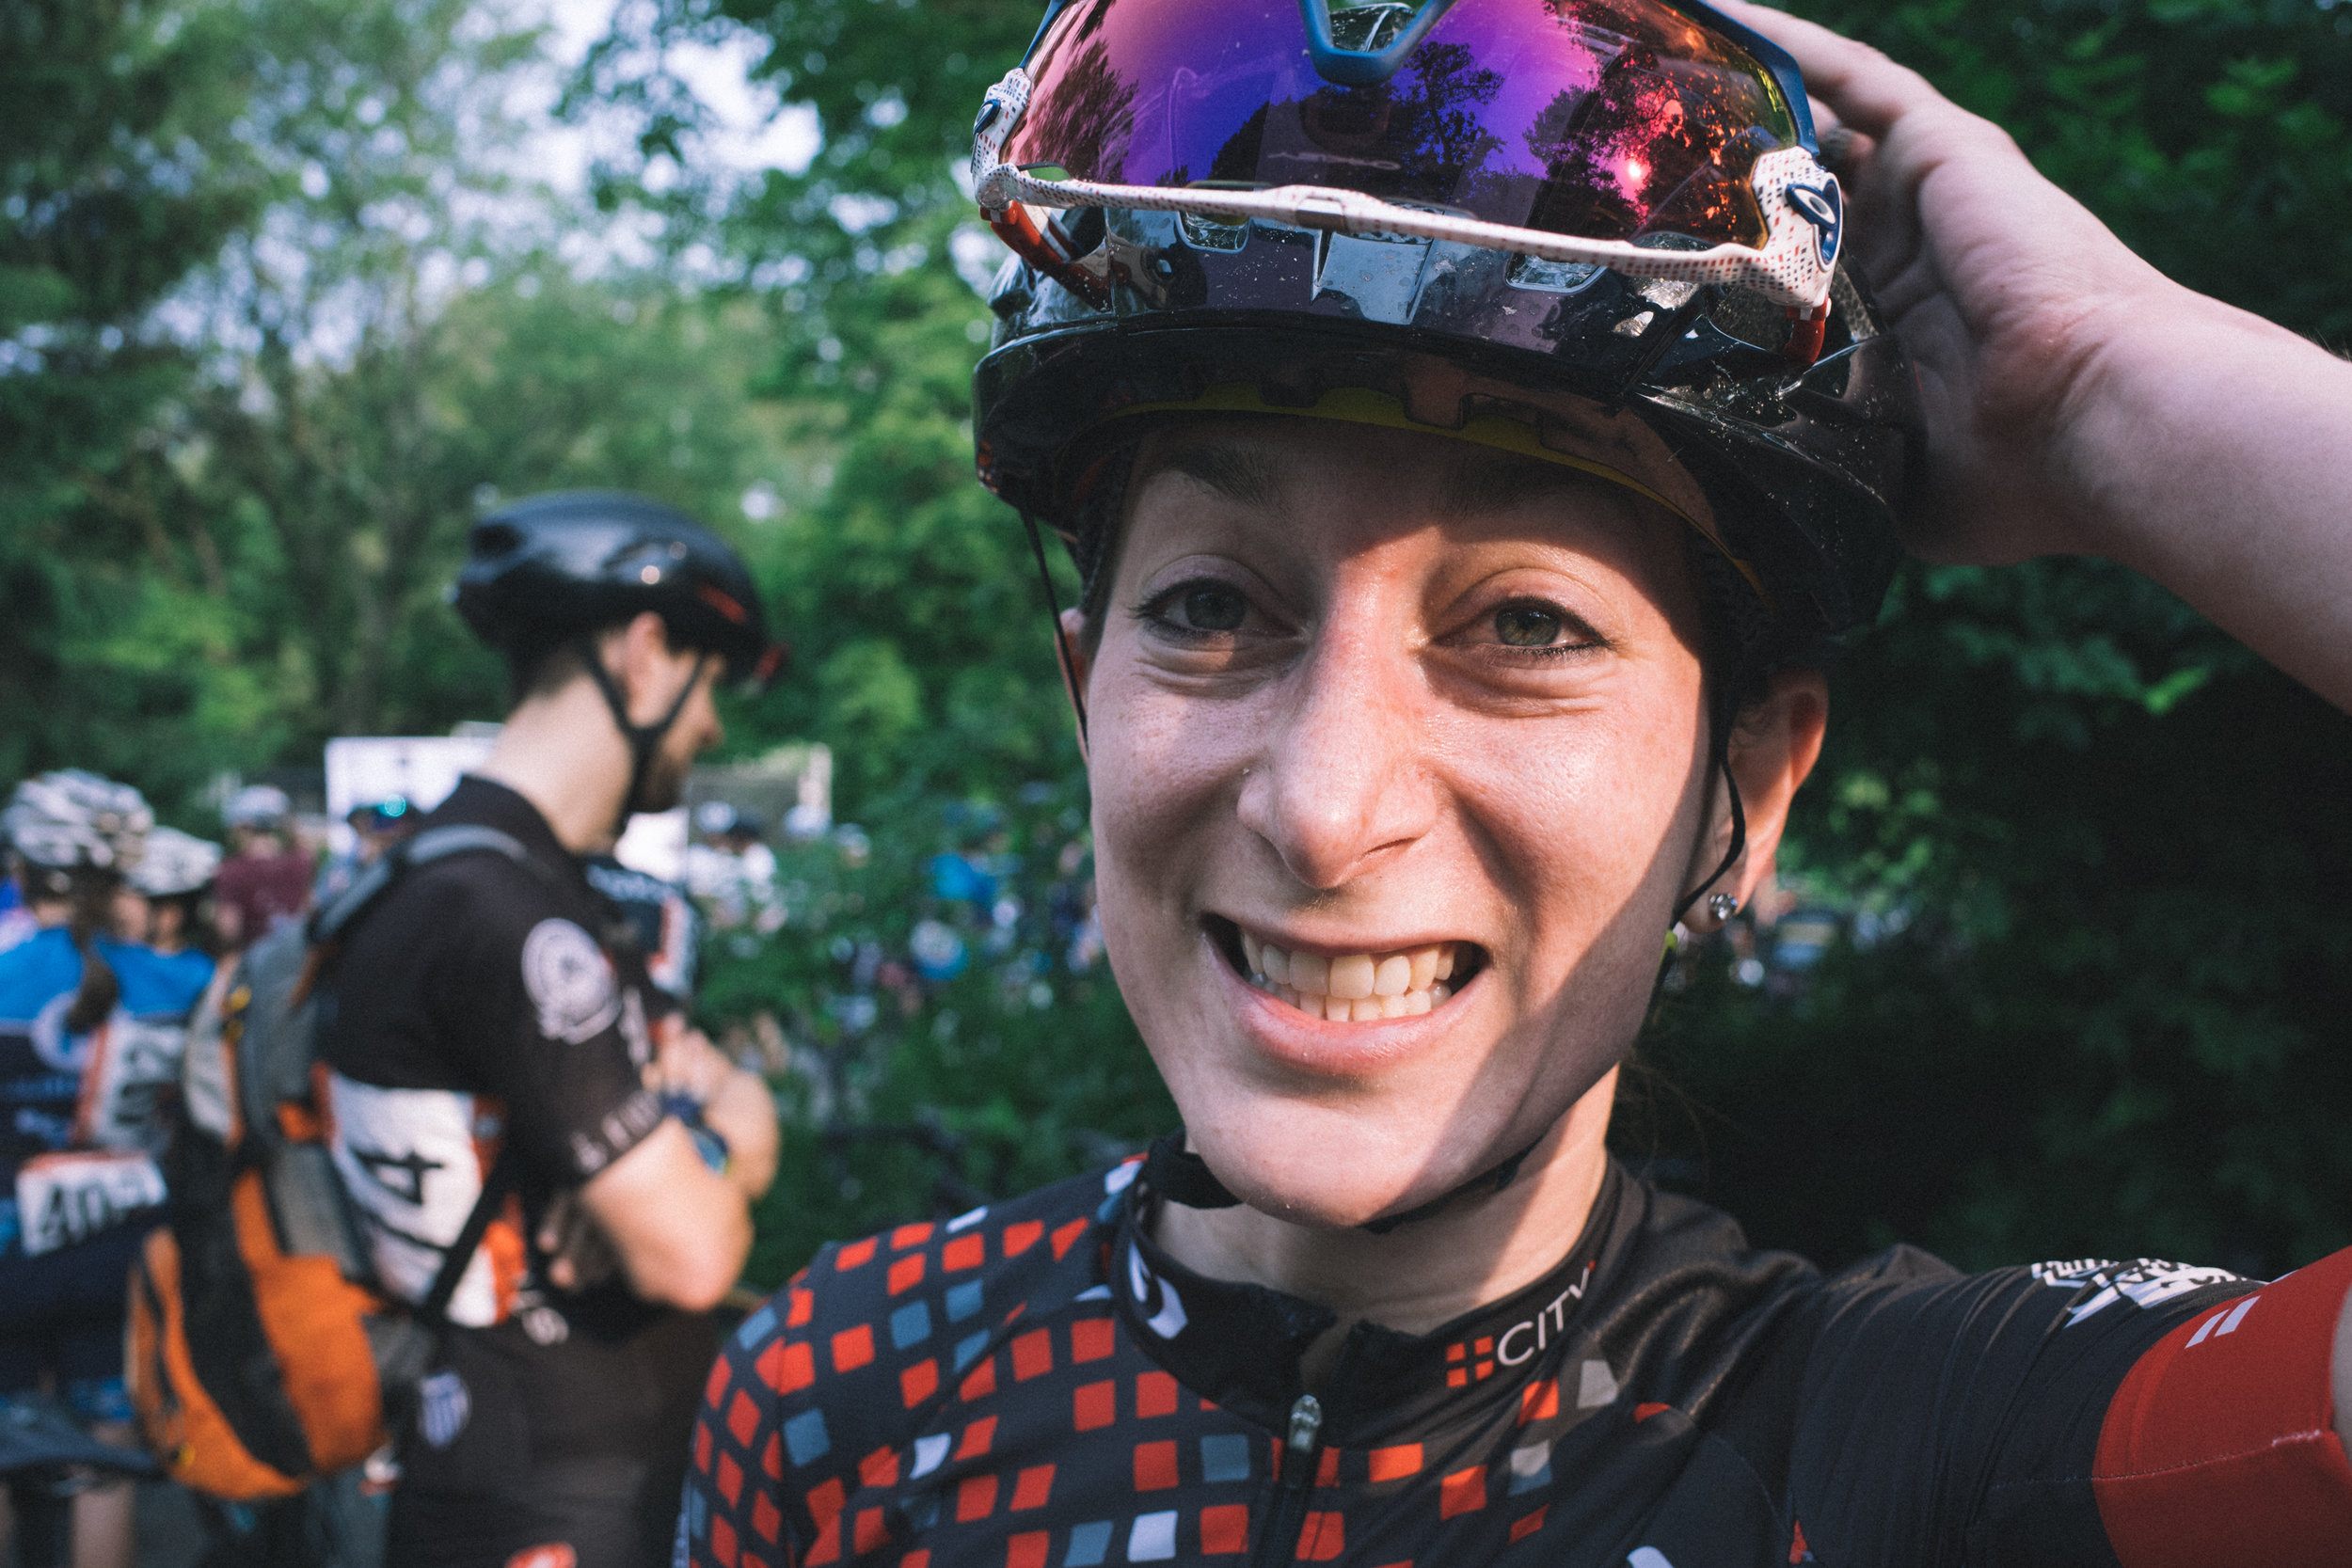 Lisa, who is immensely better at bikes than I am